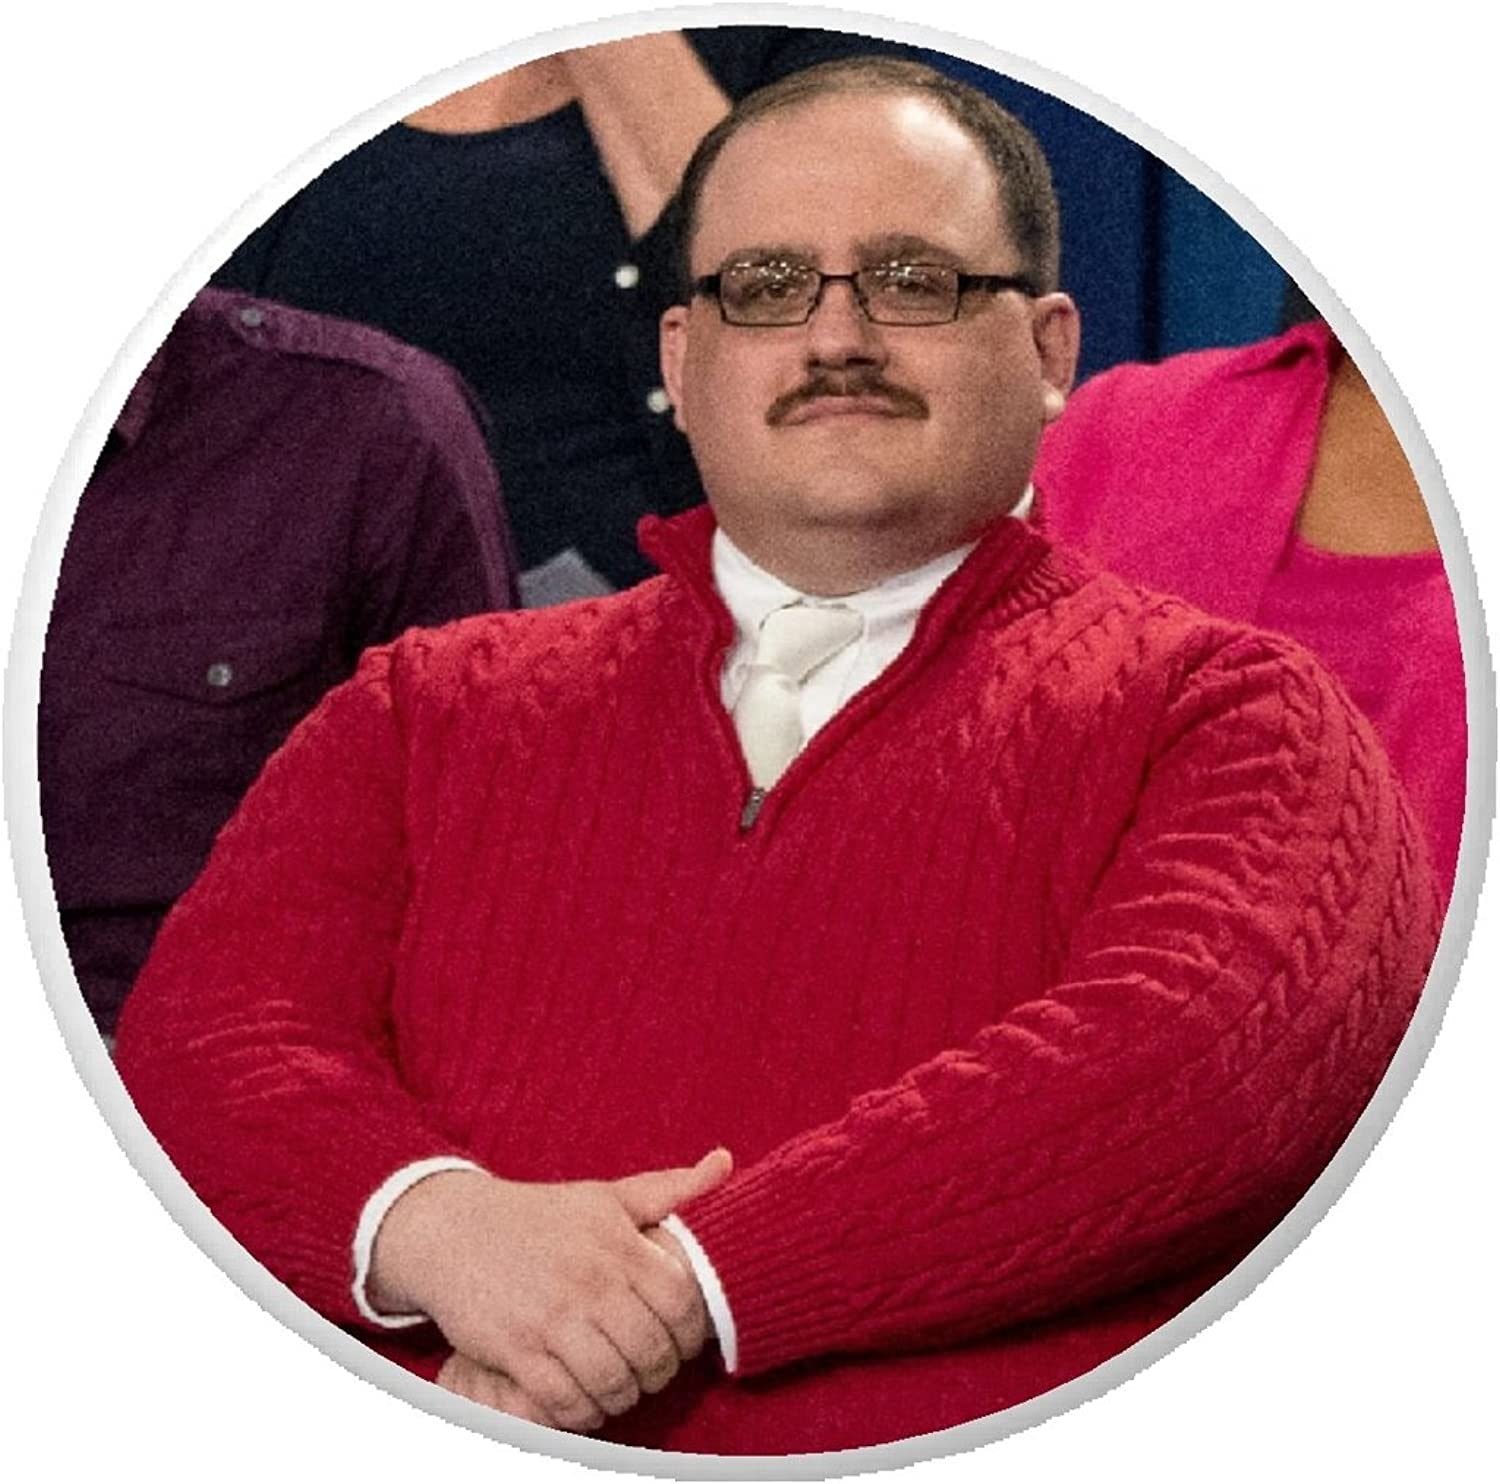 Amazon.com: Ken Bone at Presidential Debate in Red Sweater Pinback ...